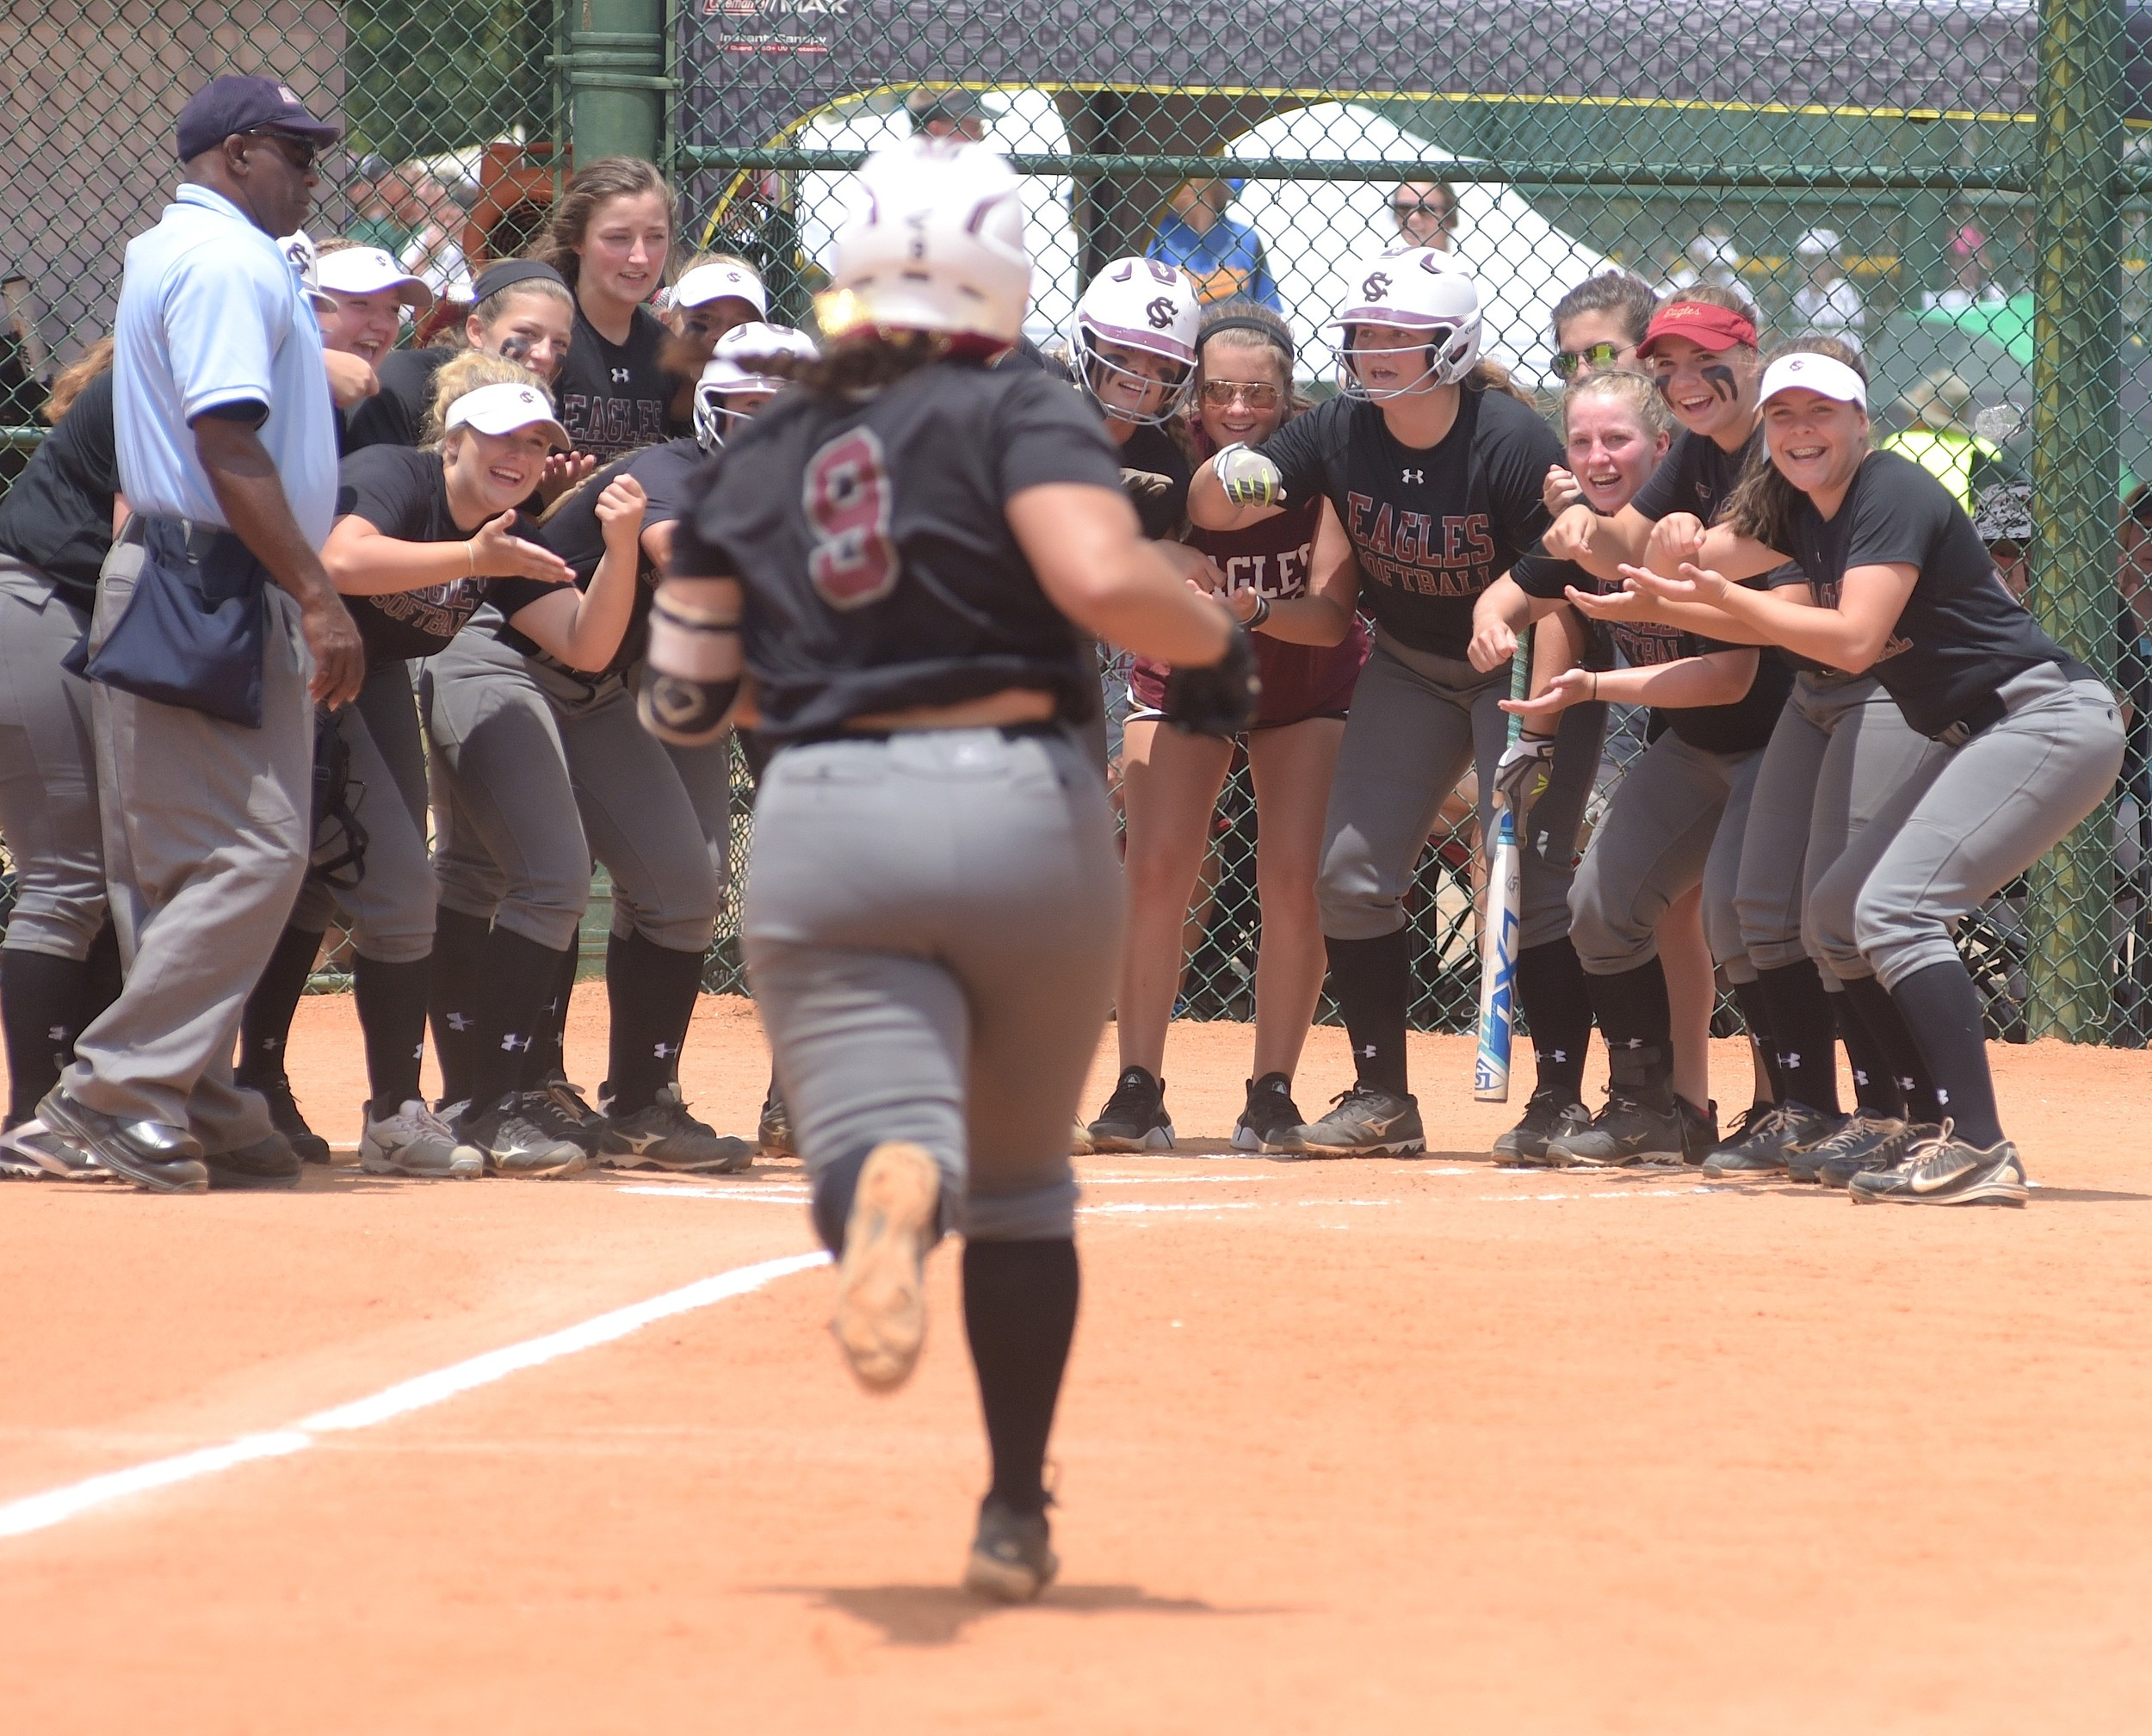 Sumiton Christian players await the arrival of Jenna Ergle (9) at home plate after the first of her two home runs against Marion County during their game at the State Softball Tournament in Montgomery on Thursday. Sumiton Christian won its state opener over Marion County (11-1) before falling to Pleasant Home (6-5). The Eagles play Ragland at 9 a.m. today.